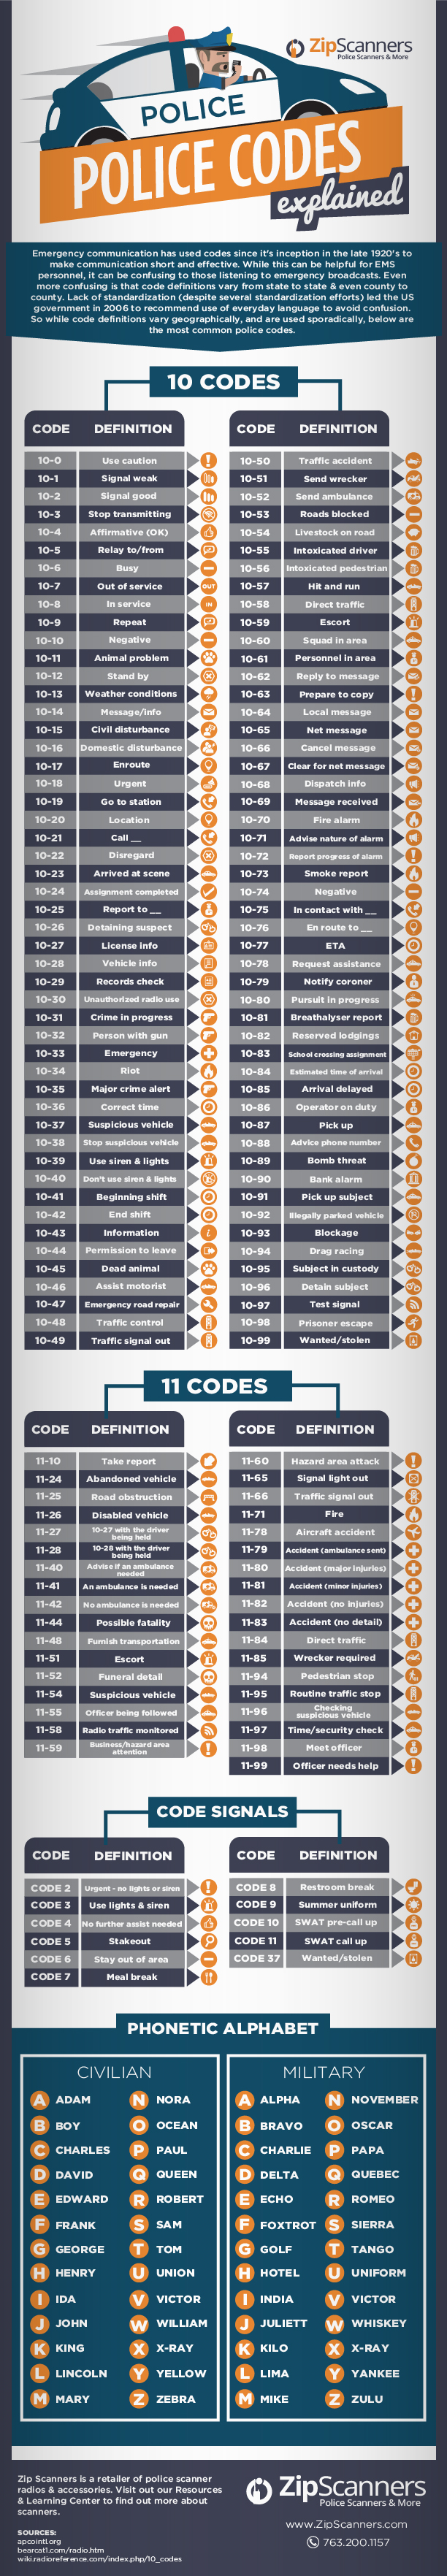 Police Codes Explained in an Infographic - Understand All ...